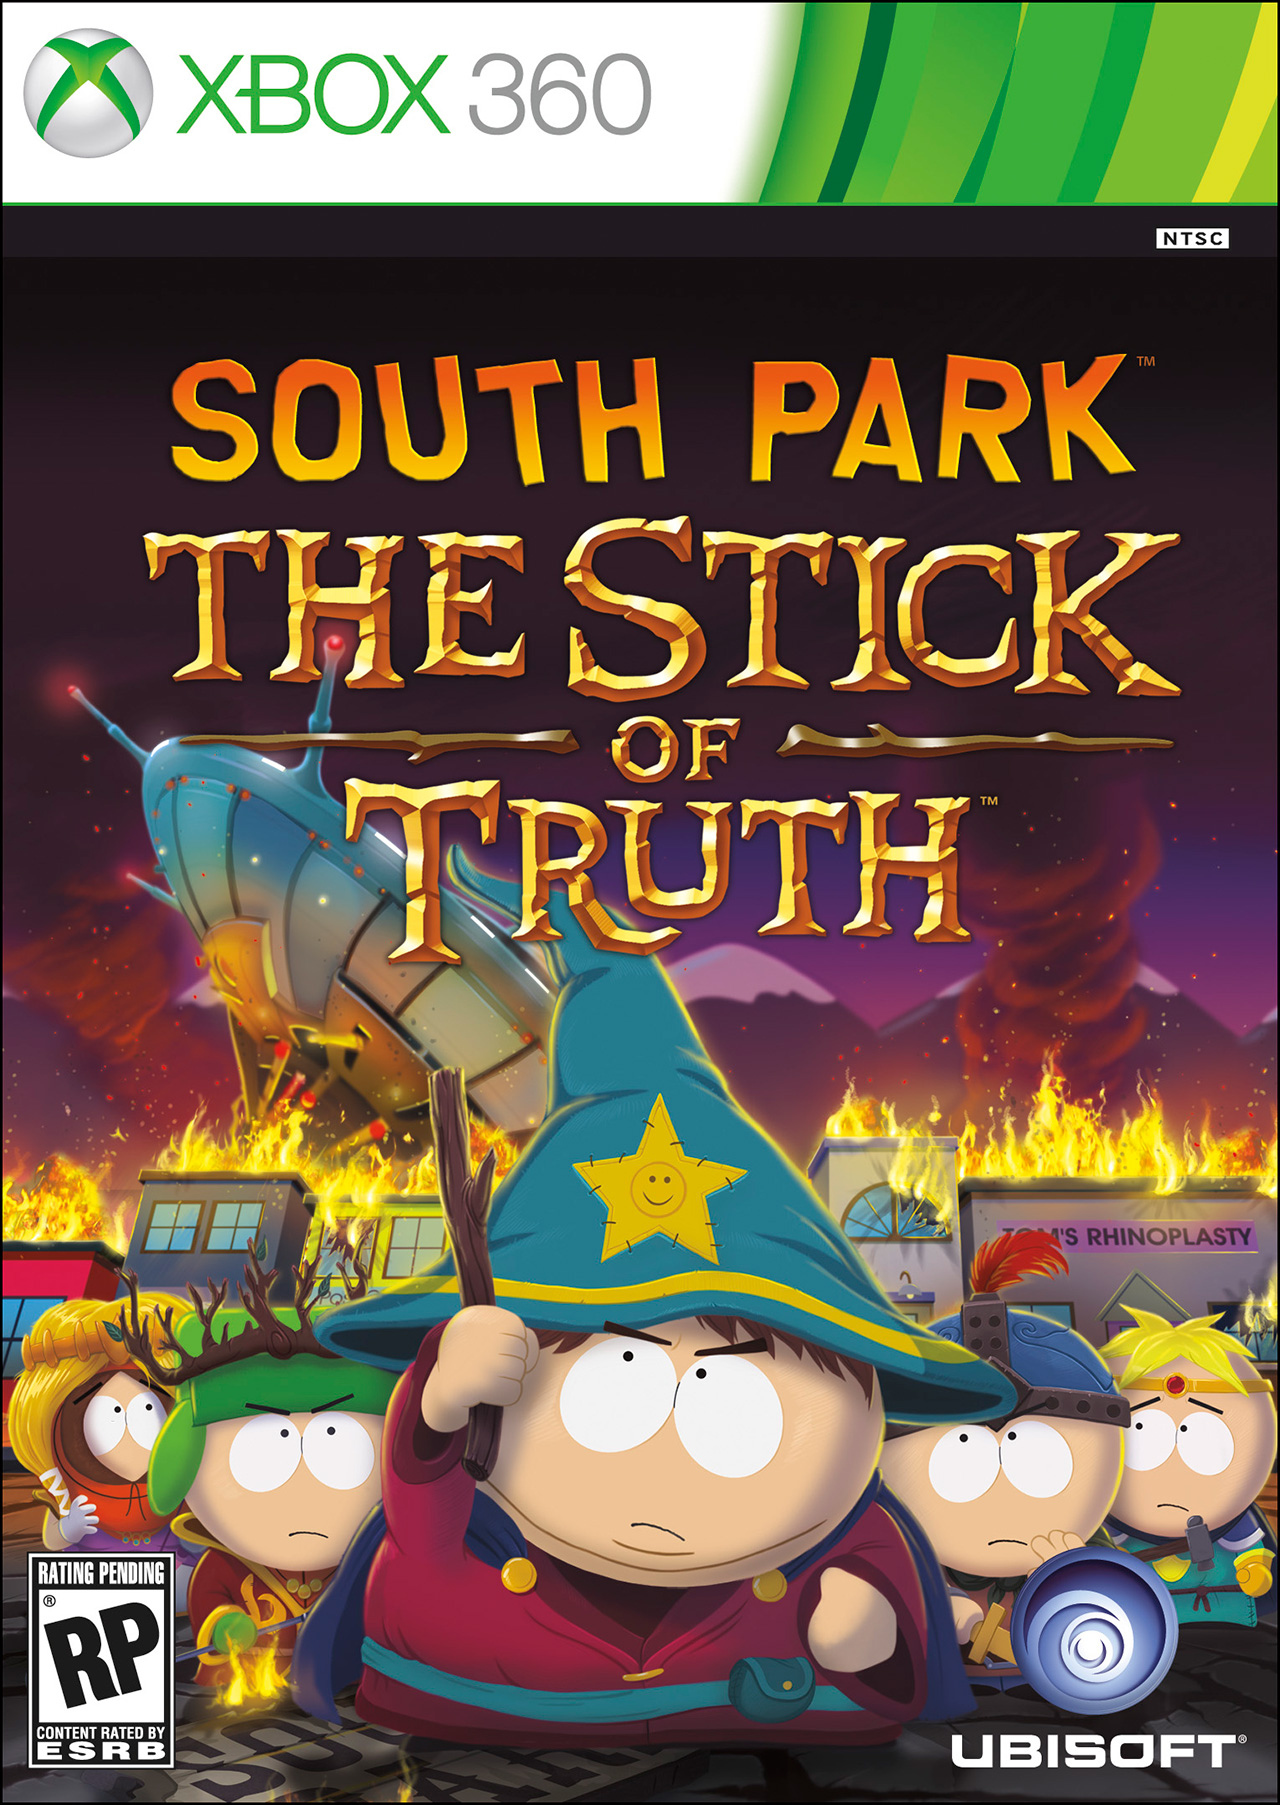 [ALL]What games do you play? - Page 6 South-park-the-stick-of-truth-box-art-x360_1280